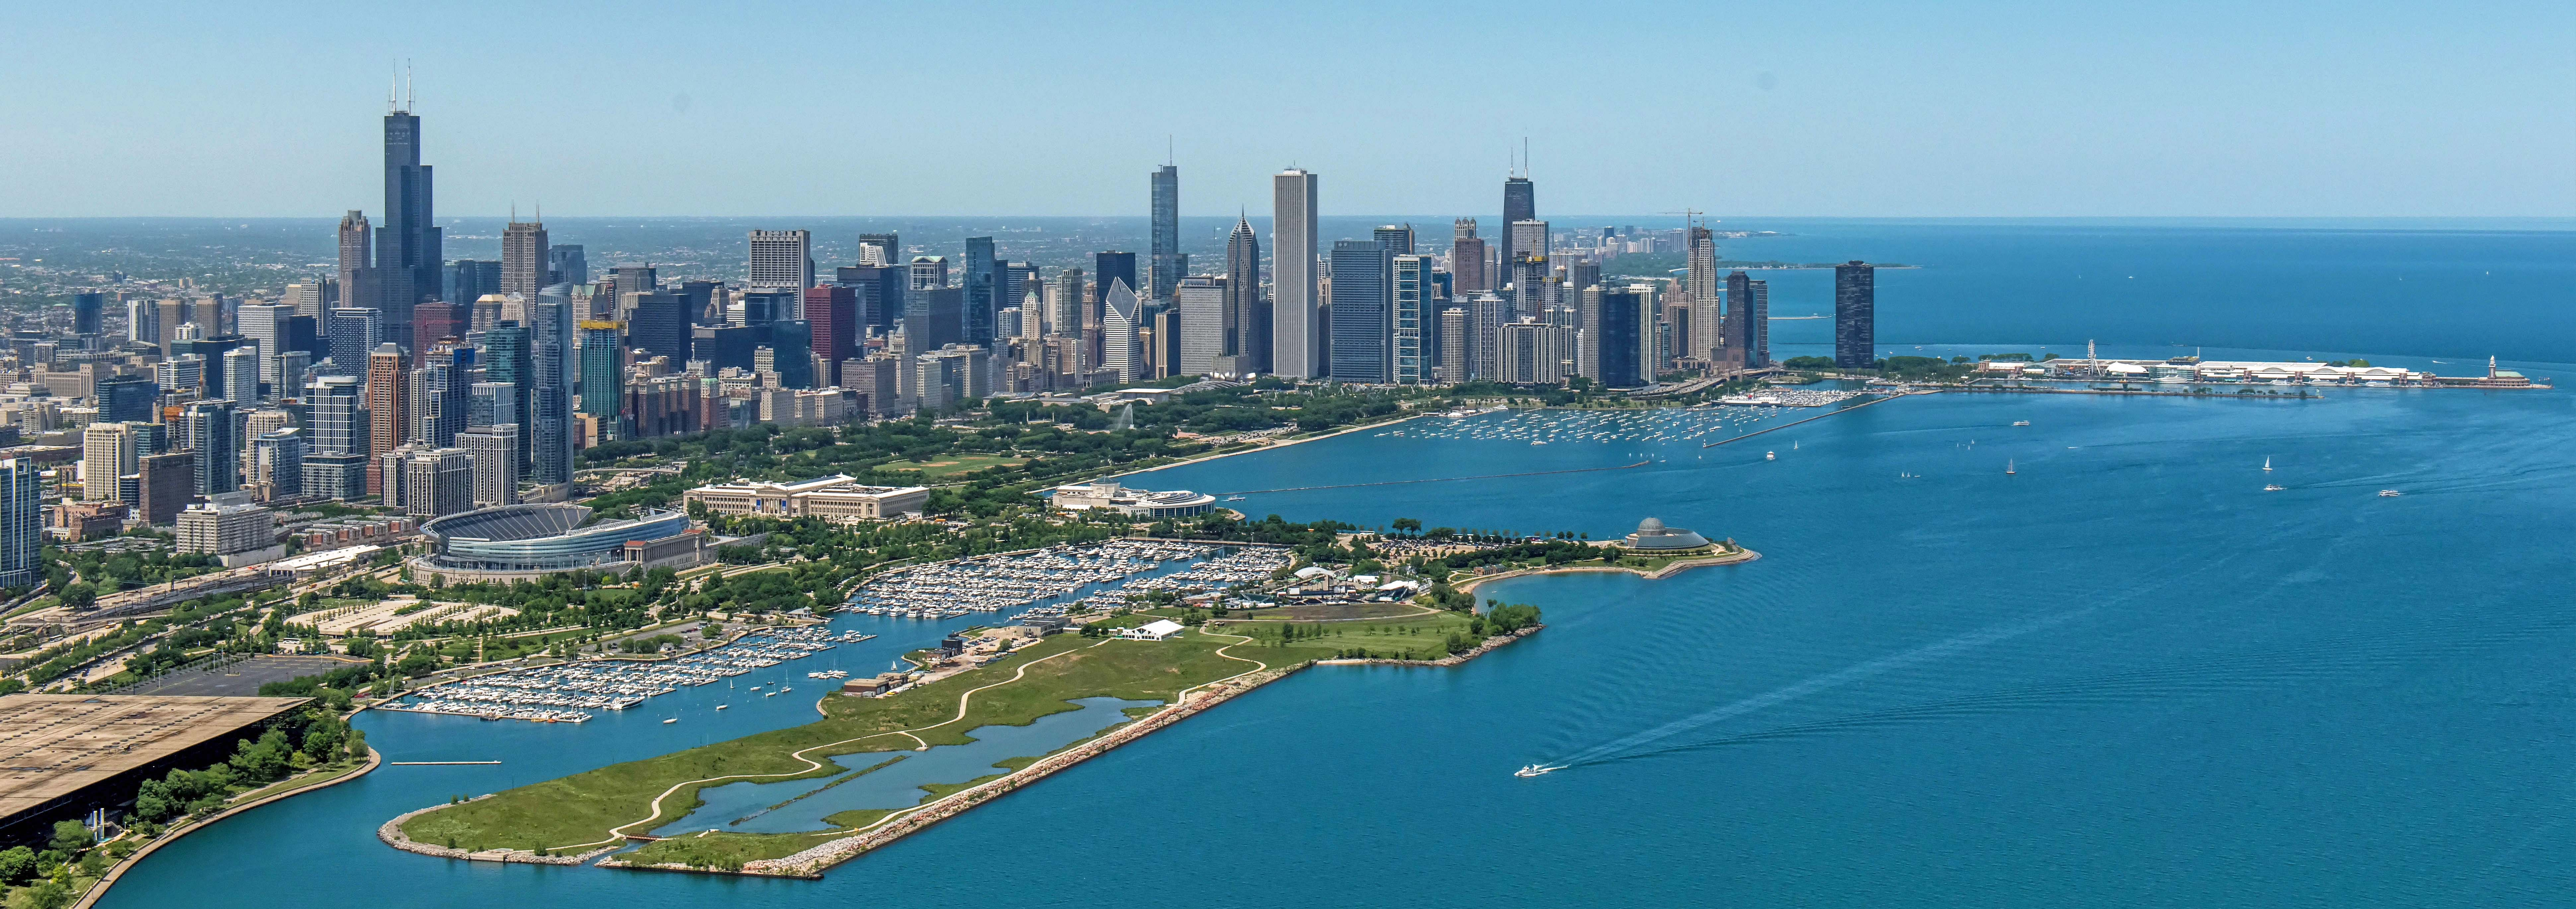 Find An Apartment In A Great Neighborhood Yochicago